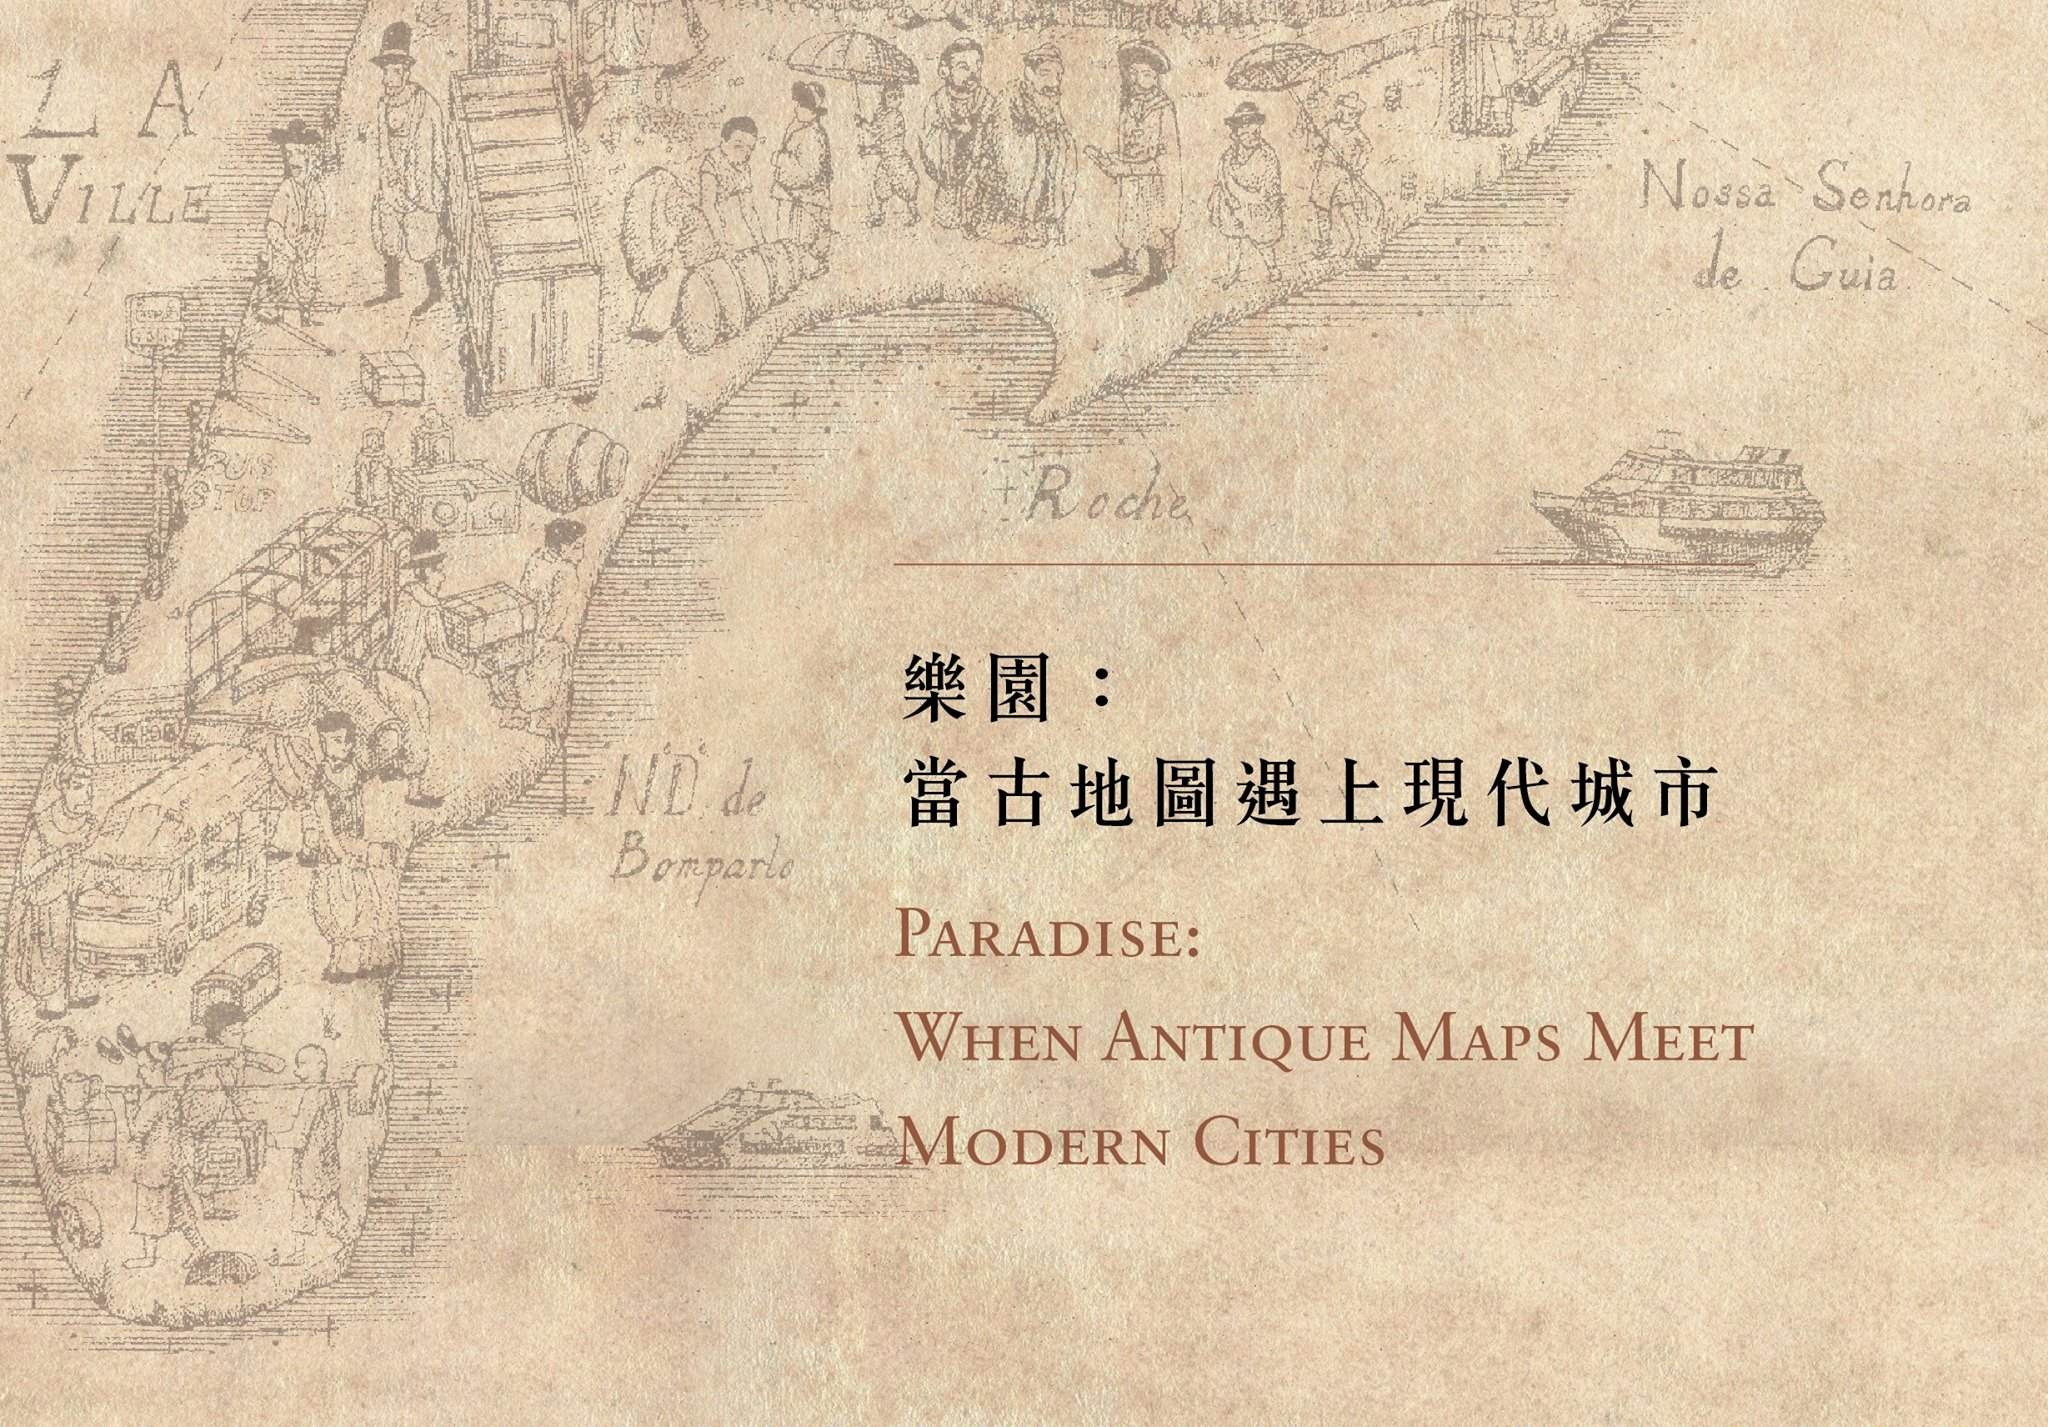 One Night in Paradise: A Book Party for the Collection of Eric Fok' s Works